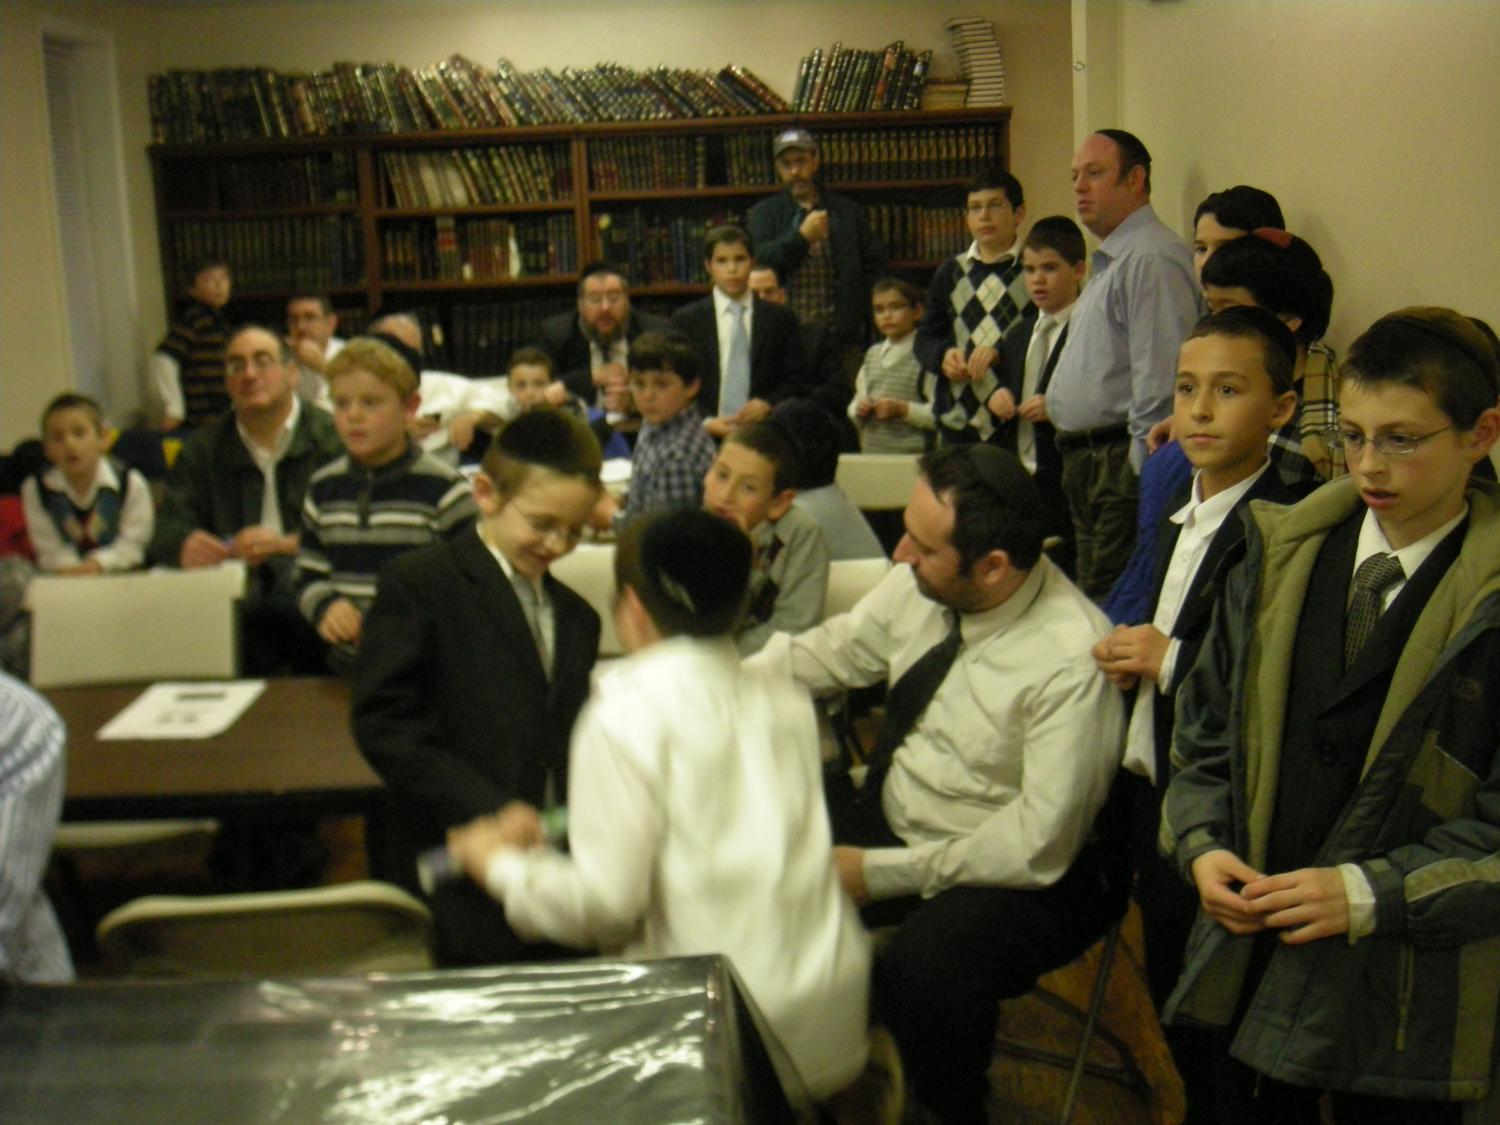 Copy-of-Community-Father-and-Son-Learning-Program-Hosted-at-the-Yeshiva